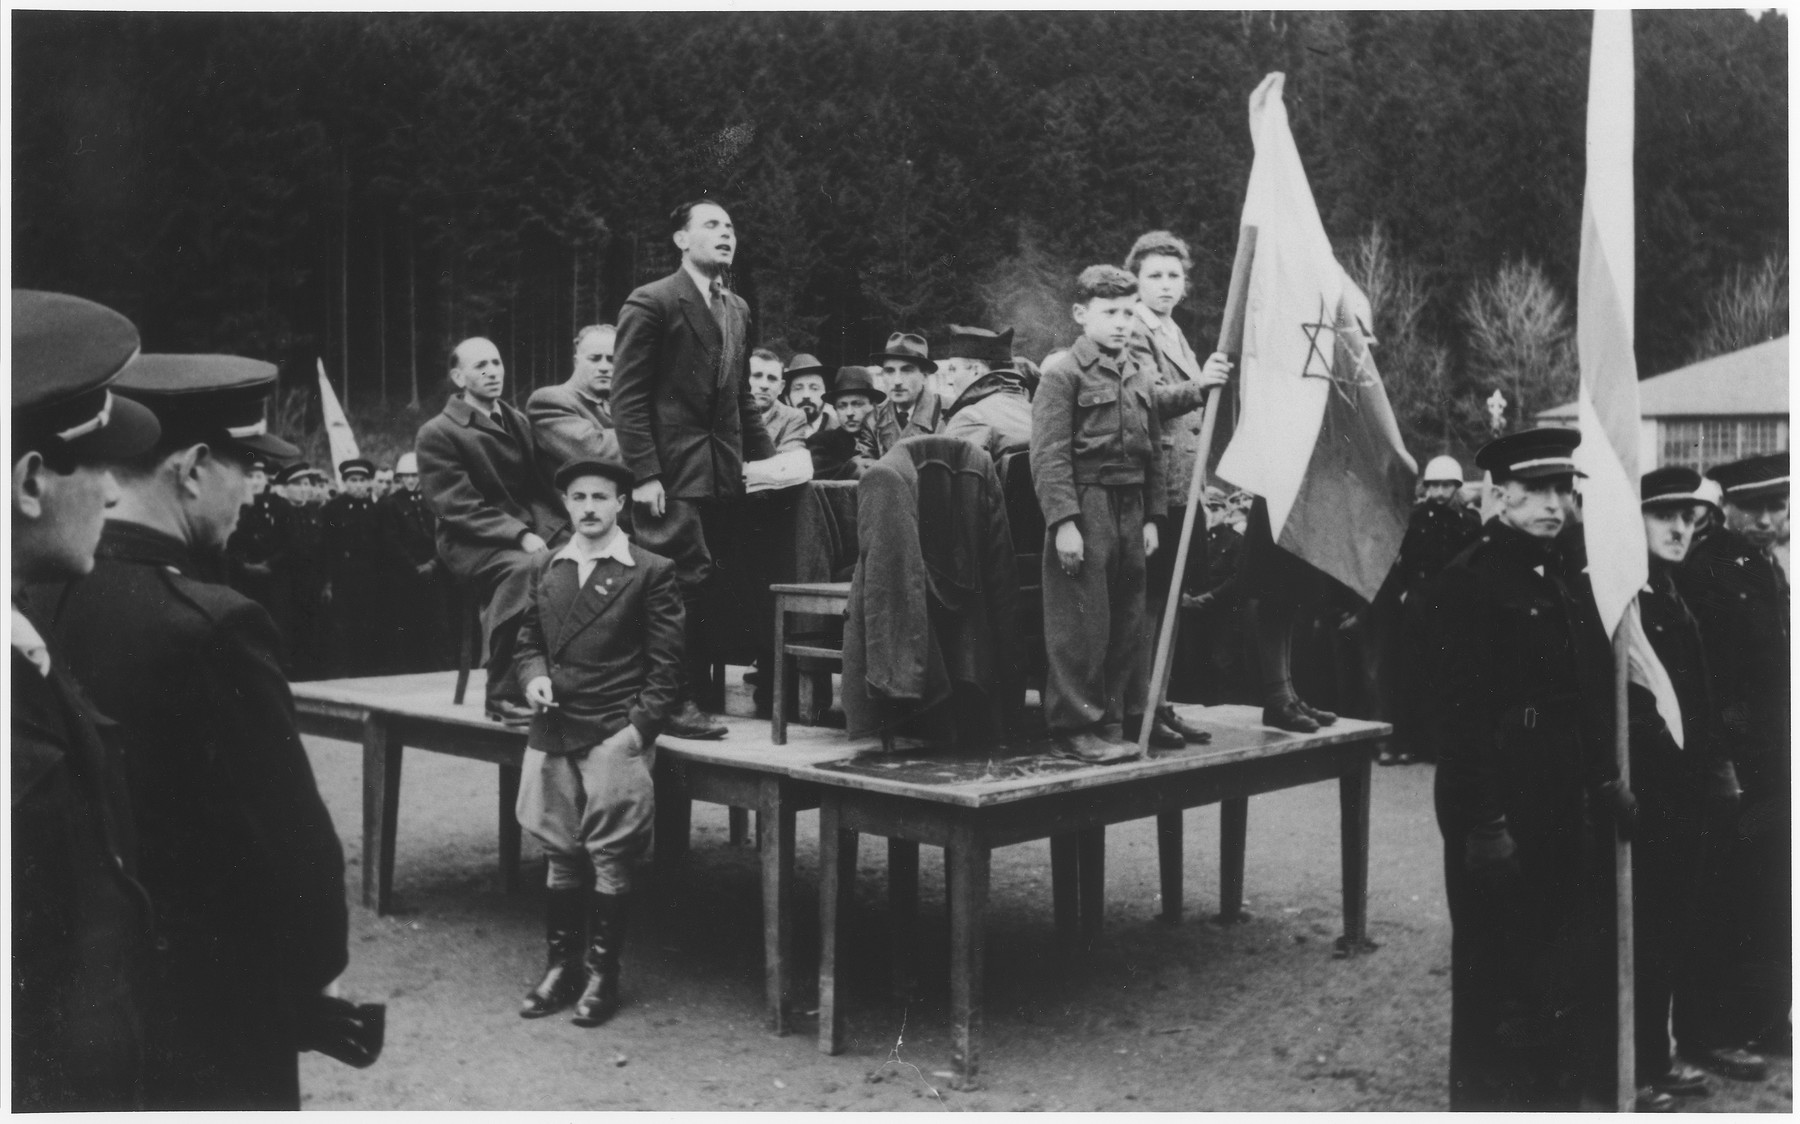 A Zionist leader delivers a speech from a makeshift podium that is ringed by uniformed Jewish police at a political demonstration in the Wetzlar displaced persons camp.